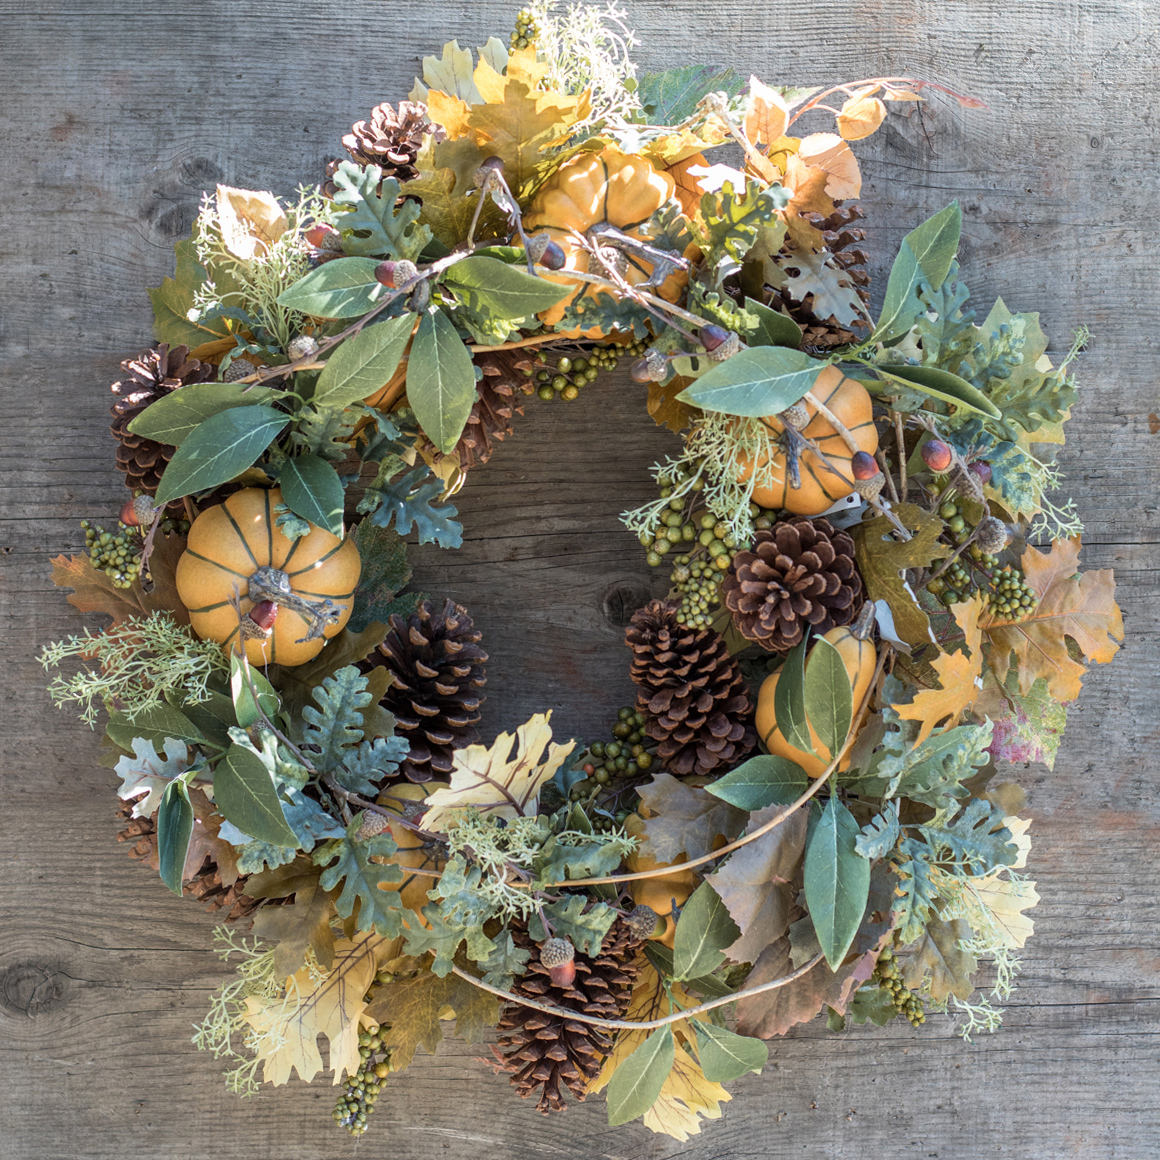 An image of a pumpkin pinecone wreath